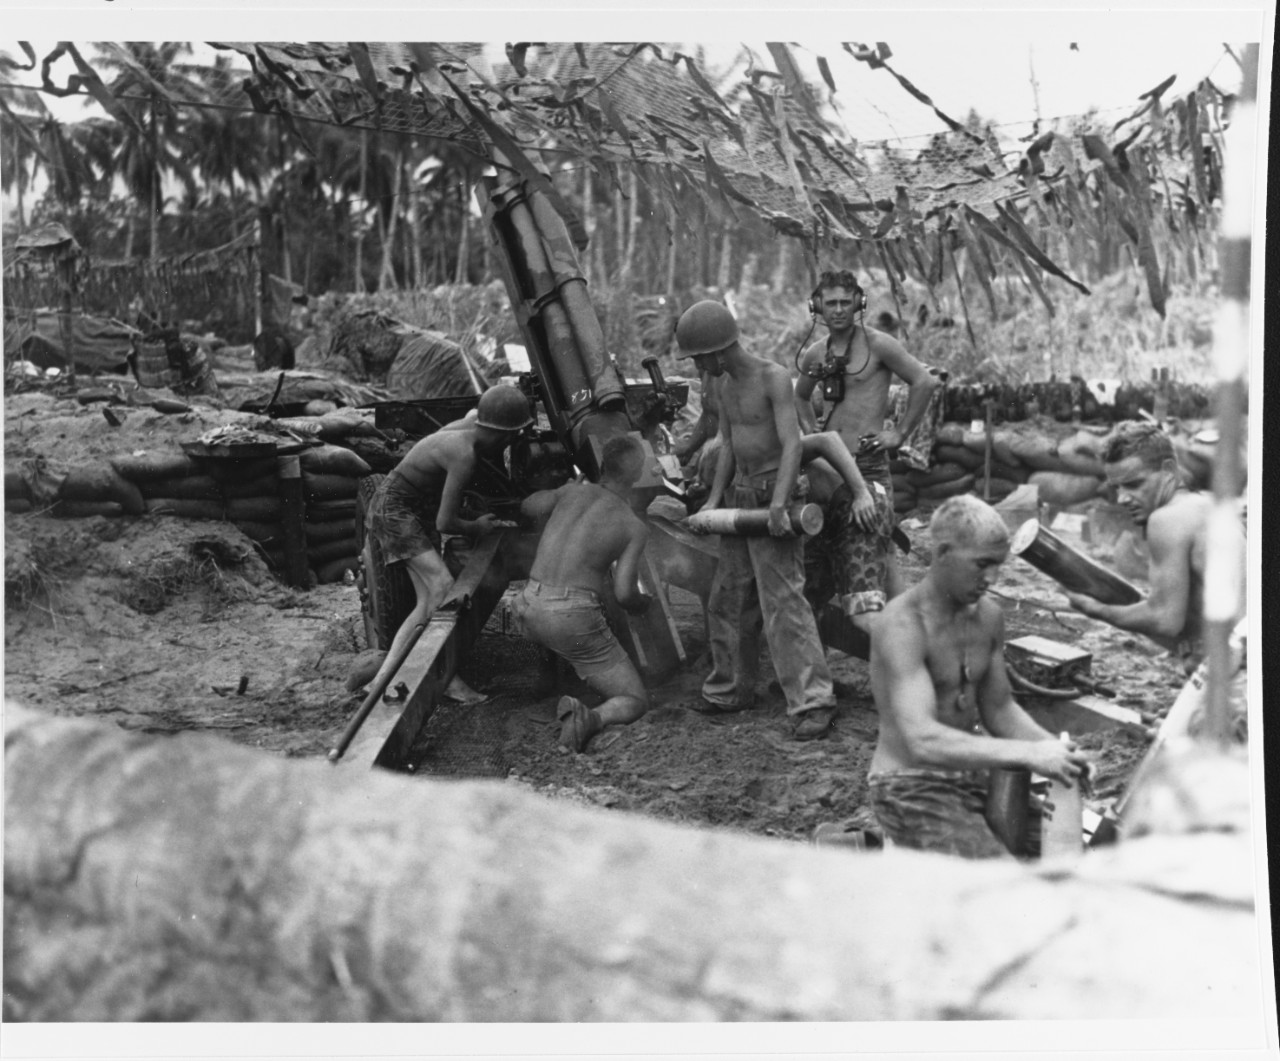 Bougainville Operation, November 1943.